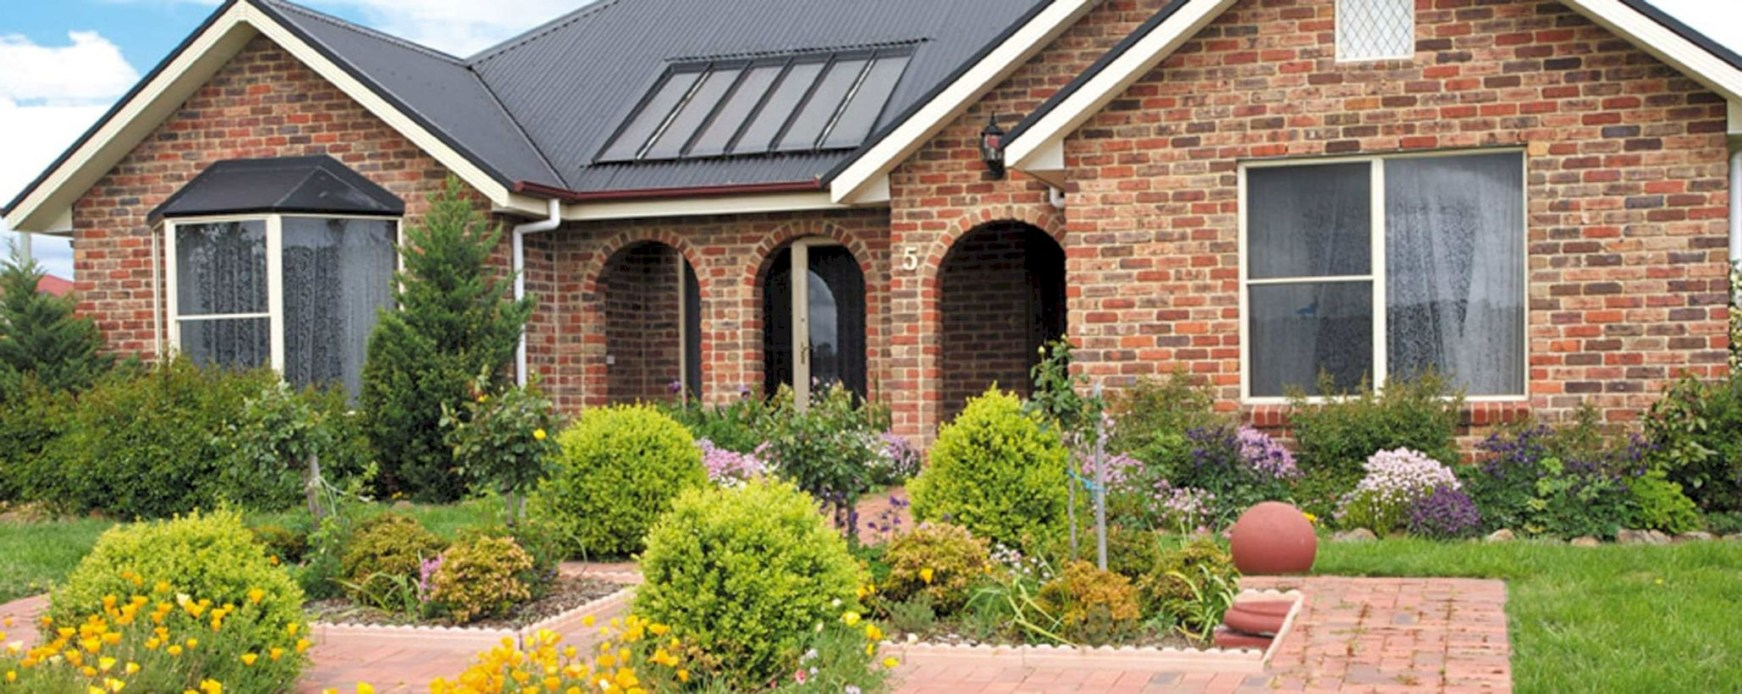 Arrangement Of A Neat Red Brick To Beautify The Exterior Of The House 08